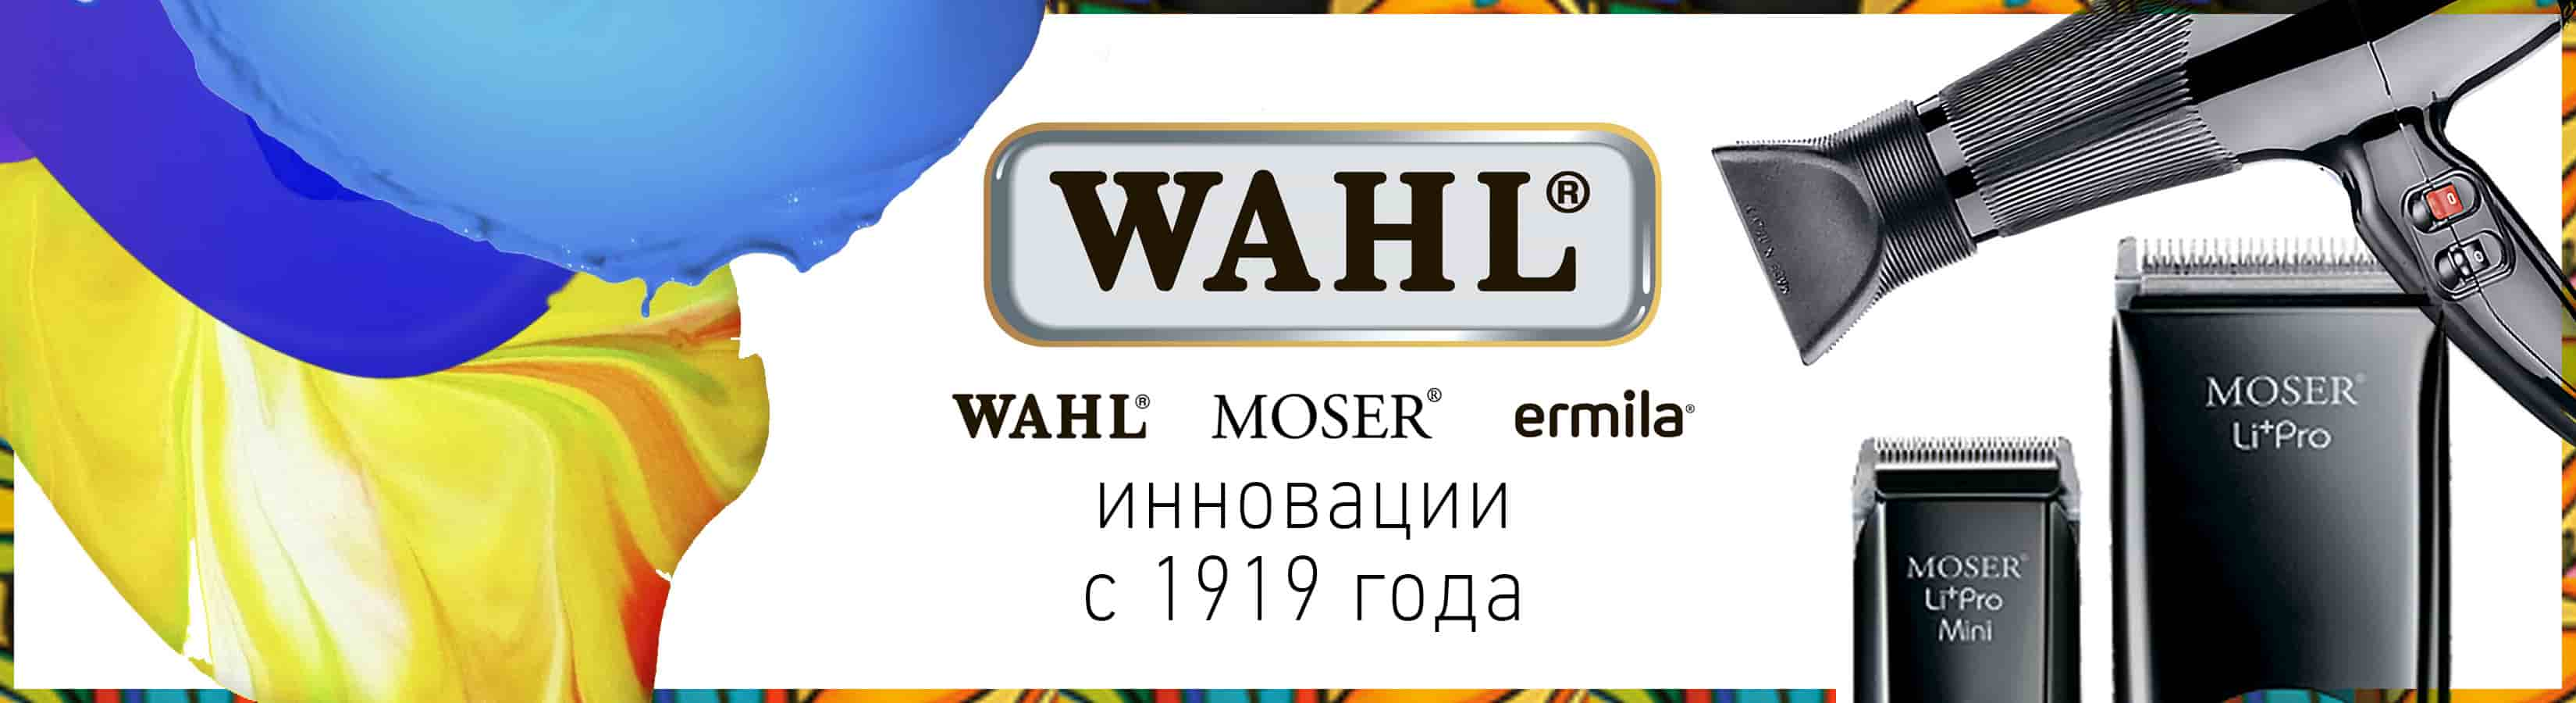 wahl instruments